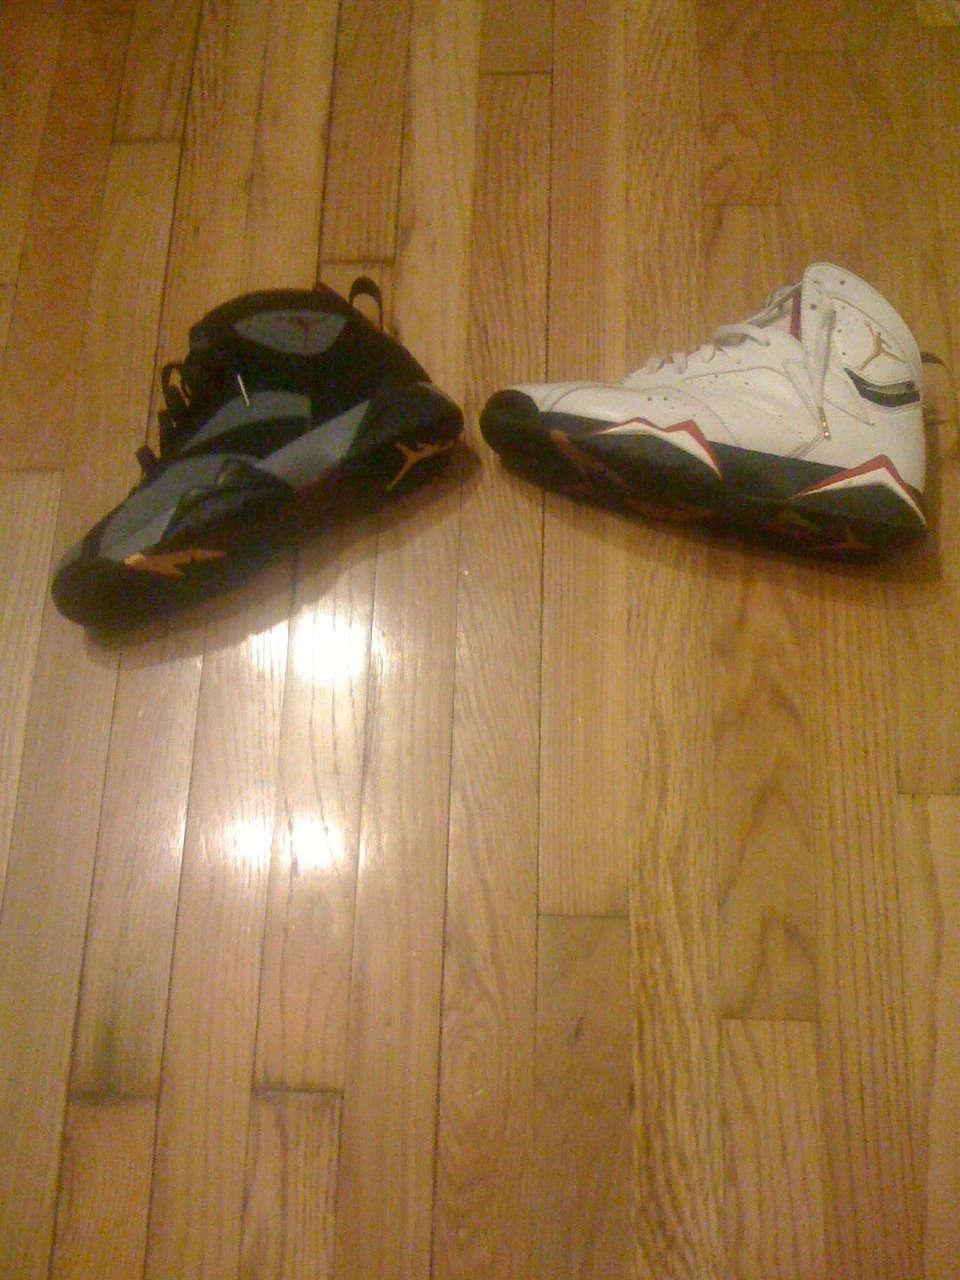 "#iPEEZYpicFLOW #FLIGHTKLUB: I'M A BIG JORDAN 7 LOVER AND THESE ARE TWO OF MY FAVORITE PAIR… I HAVE TO GIVE THE EDGE TO THE ""BORDEAUX"" JOINTS.. THESE DROPPED WHEN I WAS AN INFANT SO I NEVER GOT A CHANCE TO GRAB THESE LOL, BUT FINALLY THEY WE'RE RE-RELEASED.. THE ""CARDINAL"" JOINTS ARE TIGHT TOO THOUGH! THESE ARE AN OG PAIR, I HEAR THEY WILL BE RE-RELEASED THIS YEAR!"